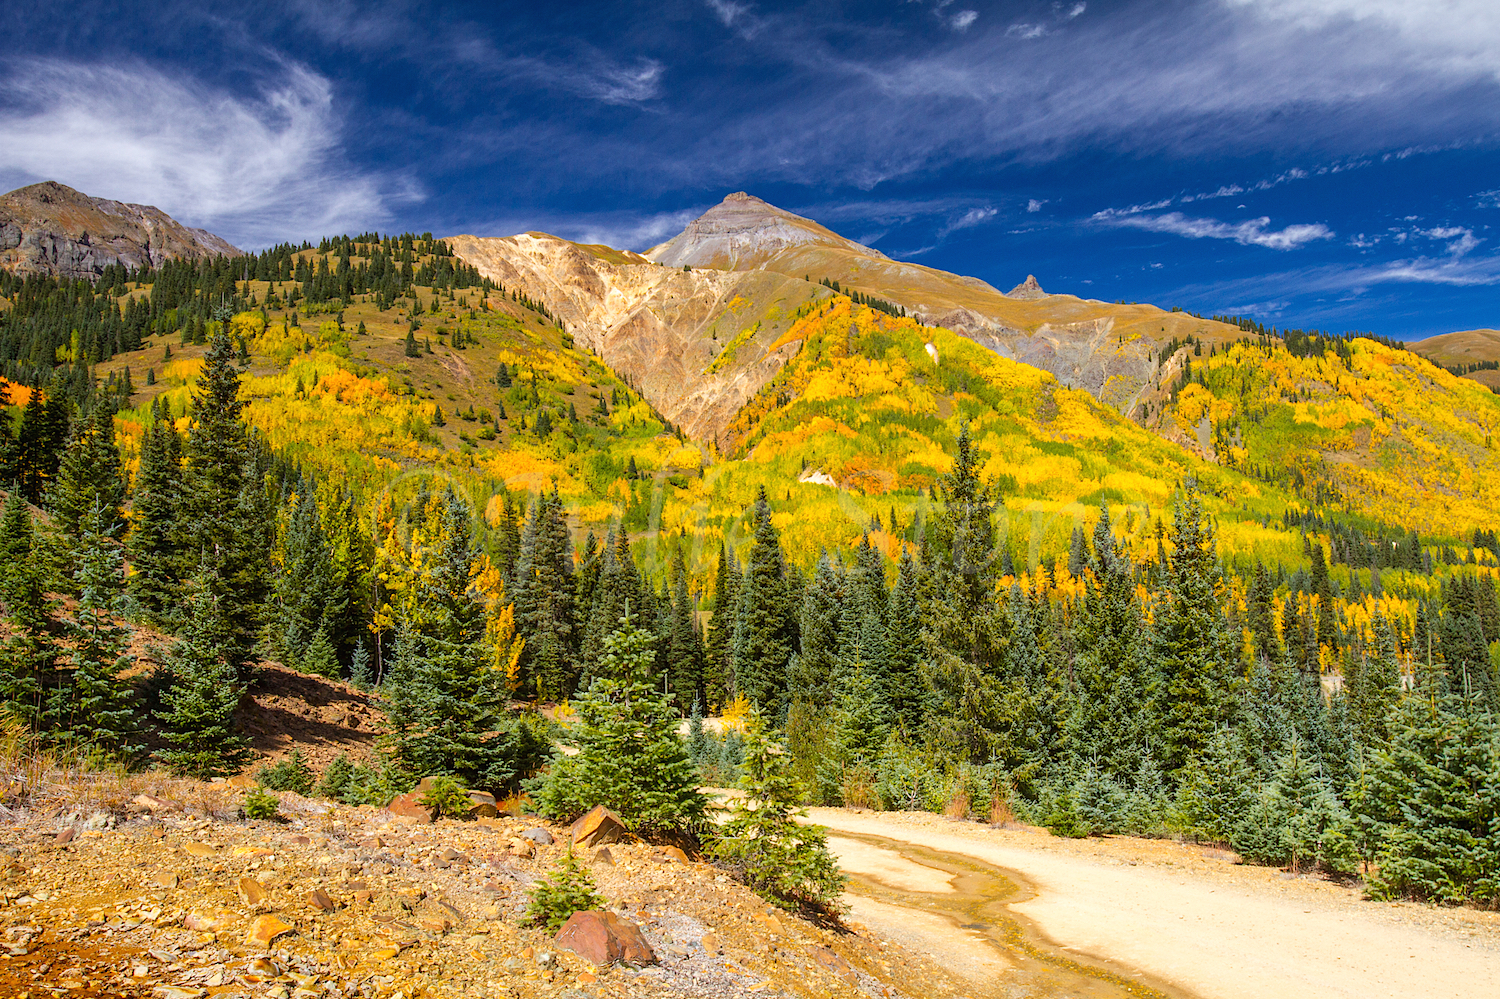 Red Mountain Fall Color, Image #9551